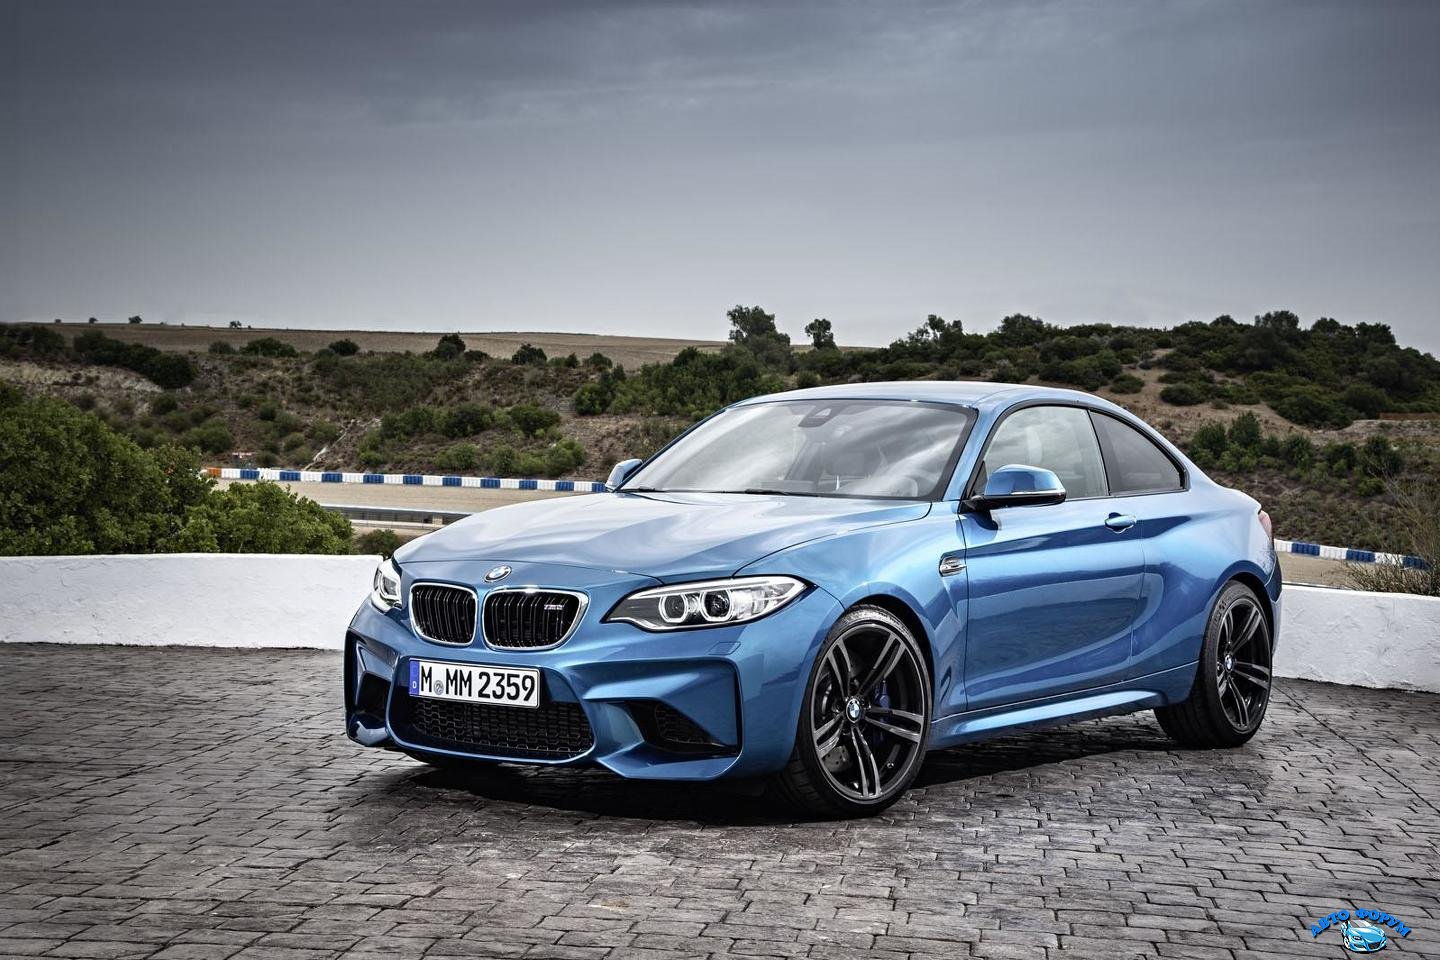 bmw-m2-official-photo-40.jpg